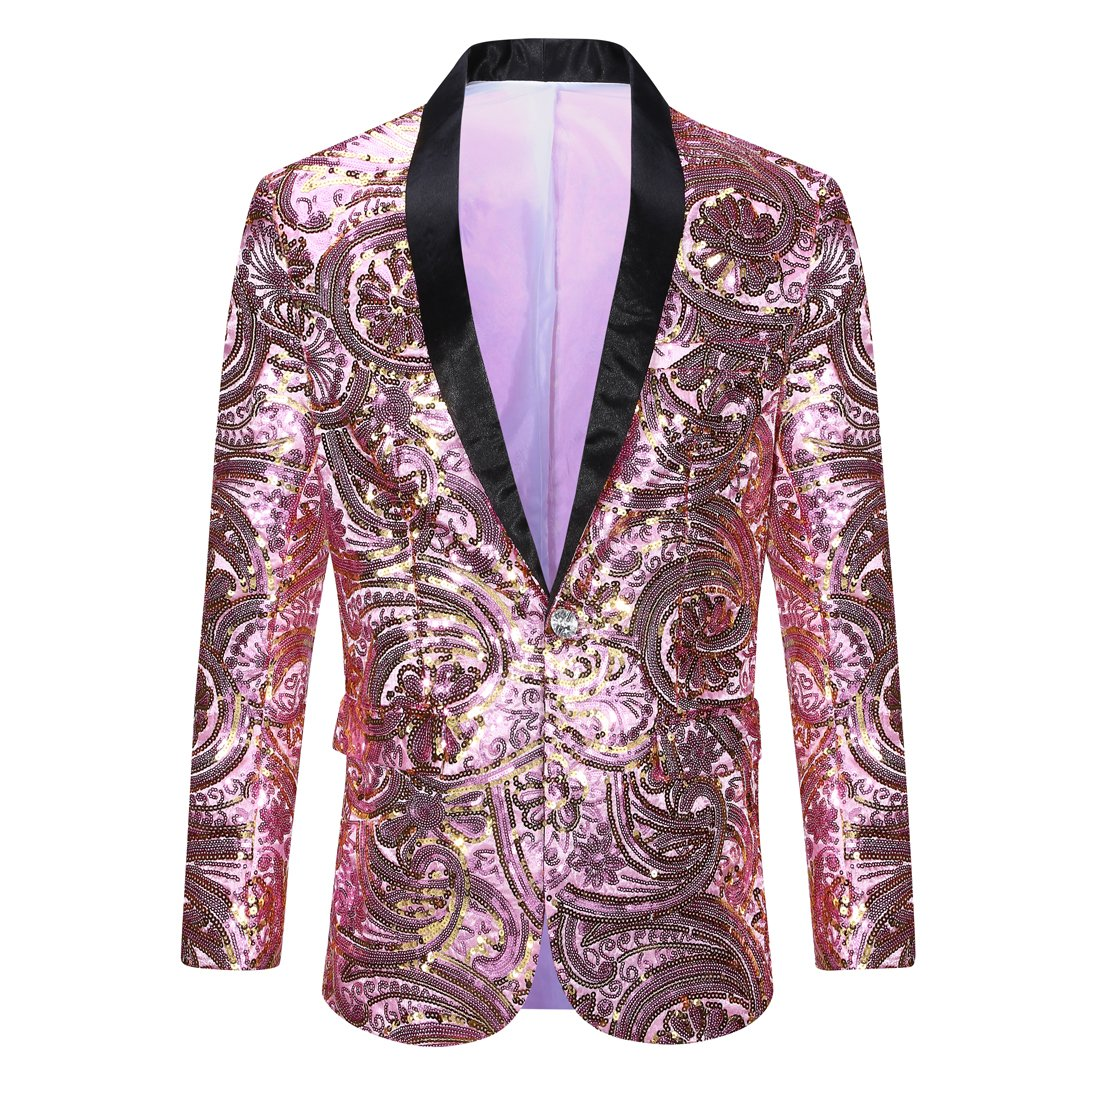 PYJTRL Men's Pink Gold Flower Pattern Wedding Groom Singer Sequins Suit Jacket (Pink, Tag XL (US M) Chest 41.5'') by PYJTRL